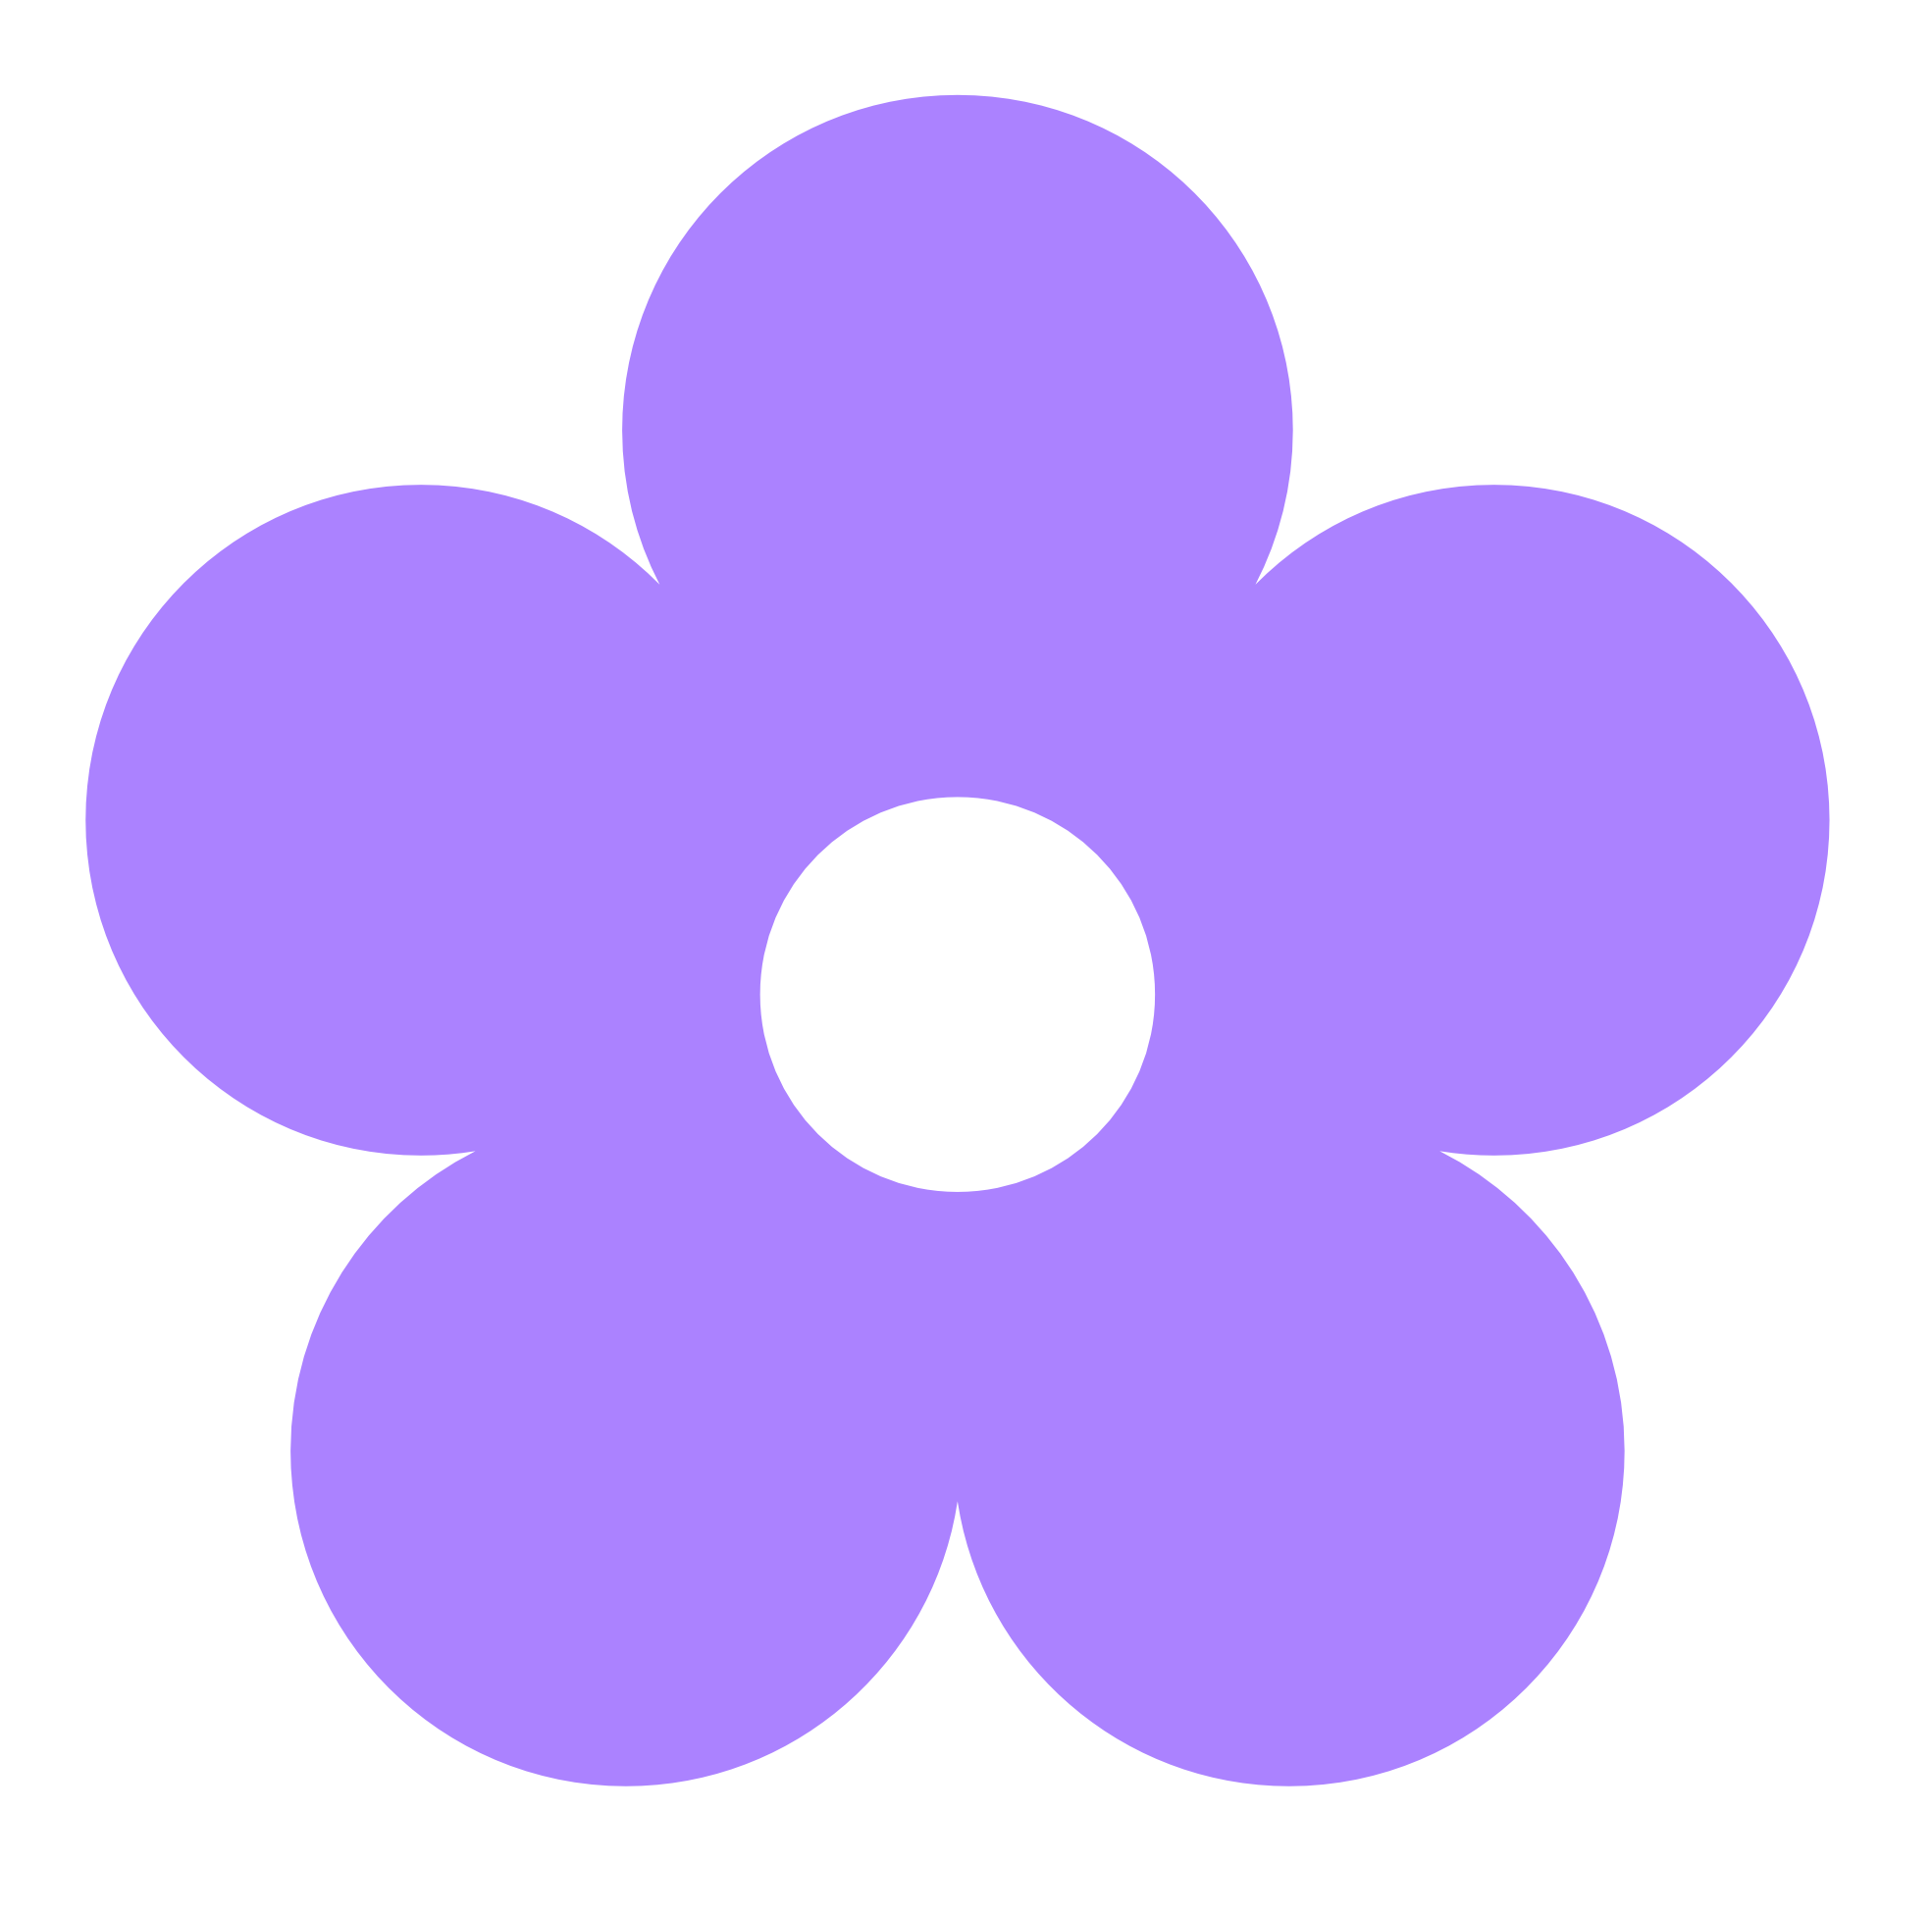 Flowers cliparts free download png transparent Flowers purple flower clip art free clipart images - Clipartix png transparent